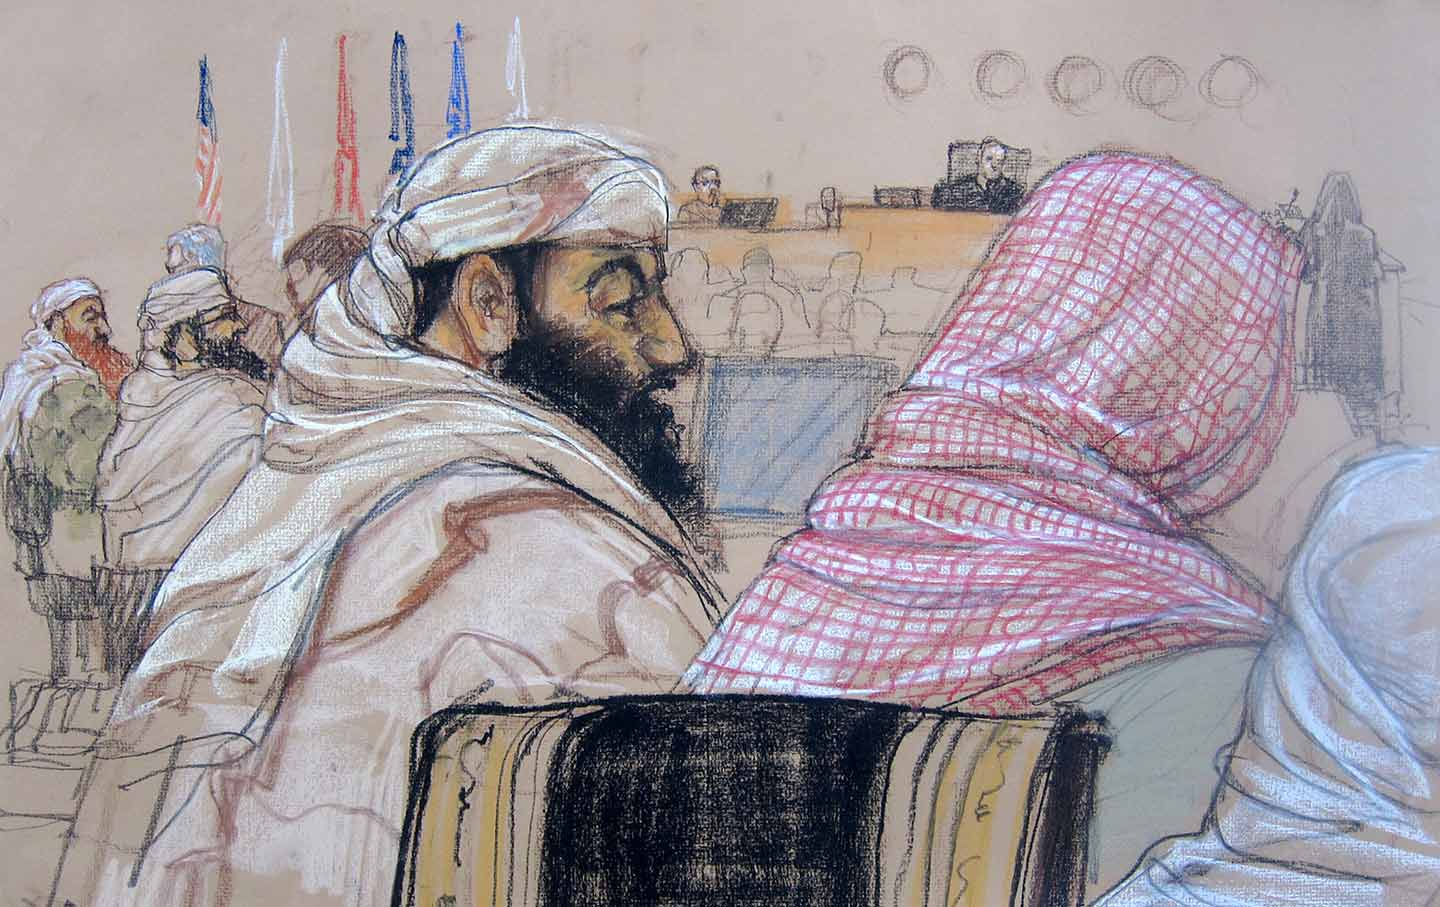 Courtroom sketch of 9/11 defendants